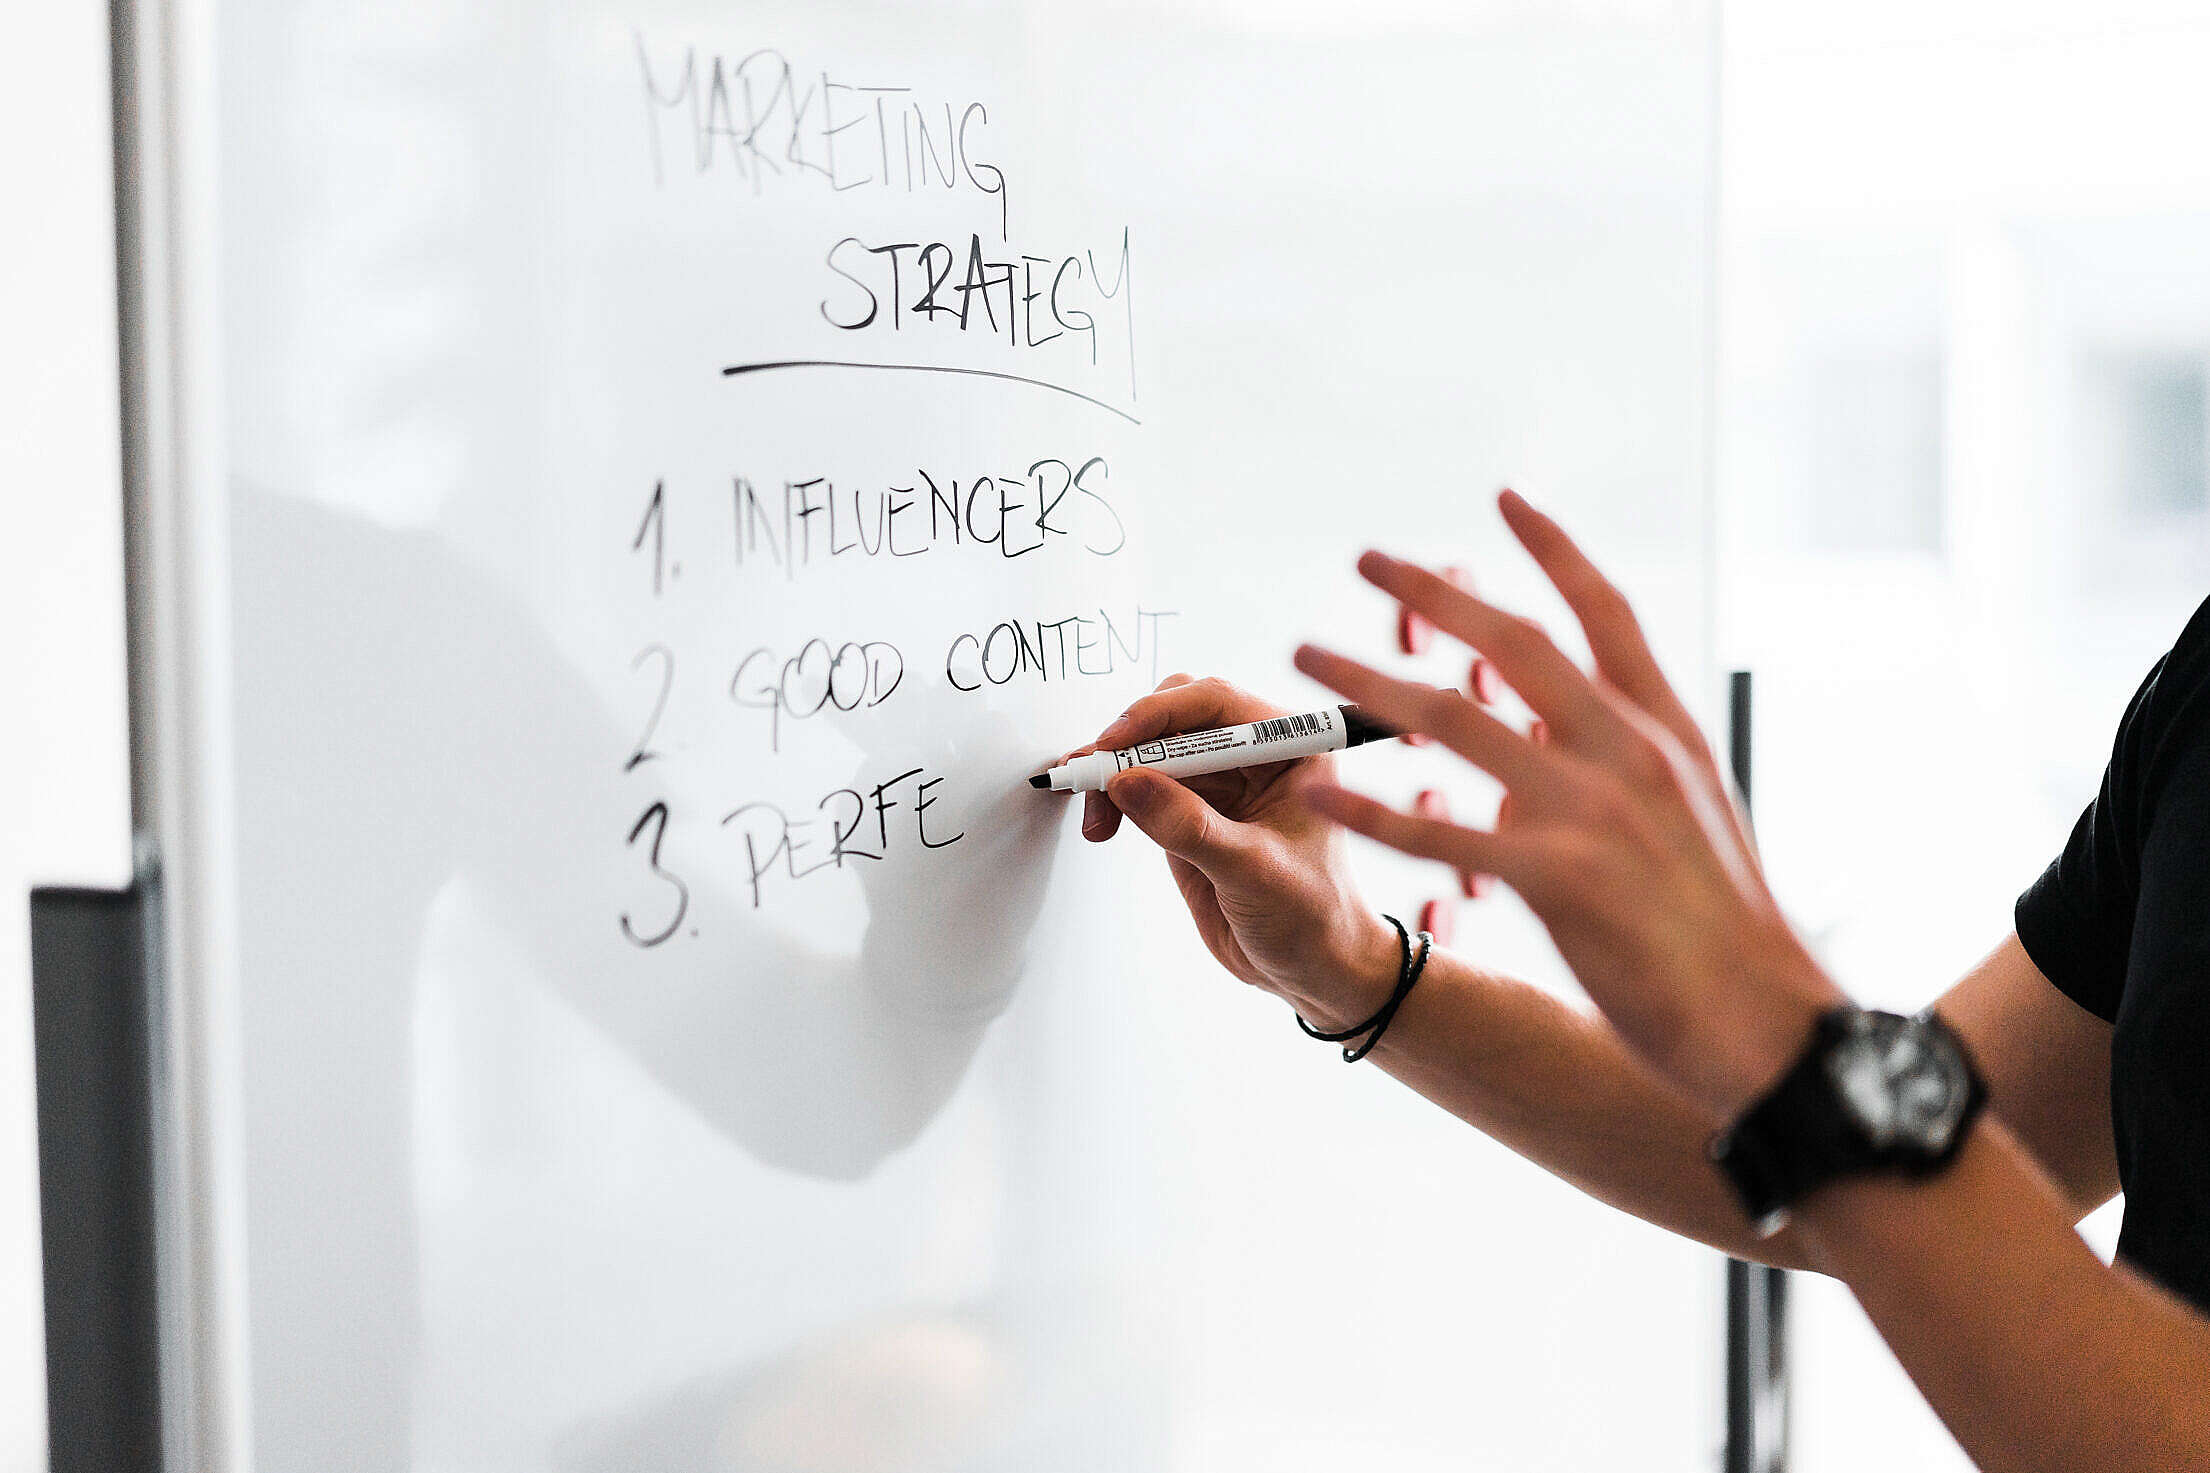 Marketing Expert Explaining New Marketing Strategy to Coworkers Free Stock Photo